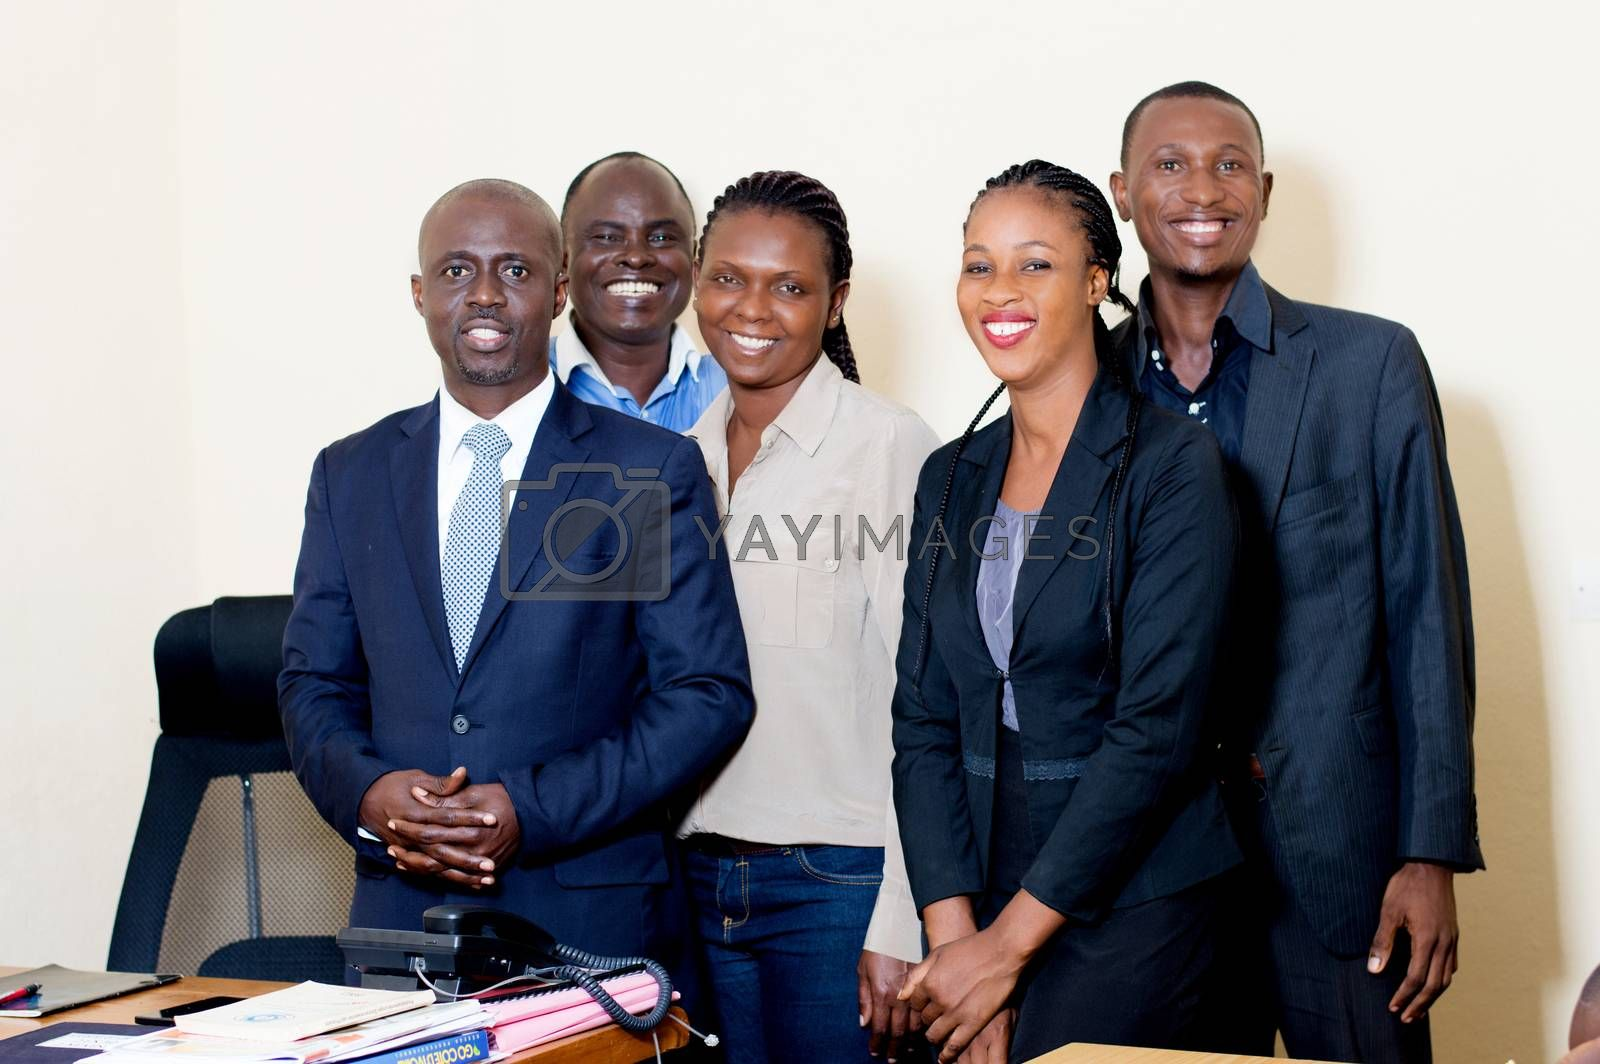 Group of happy business people posing together at the office. by vystekimages